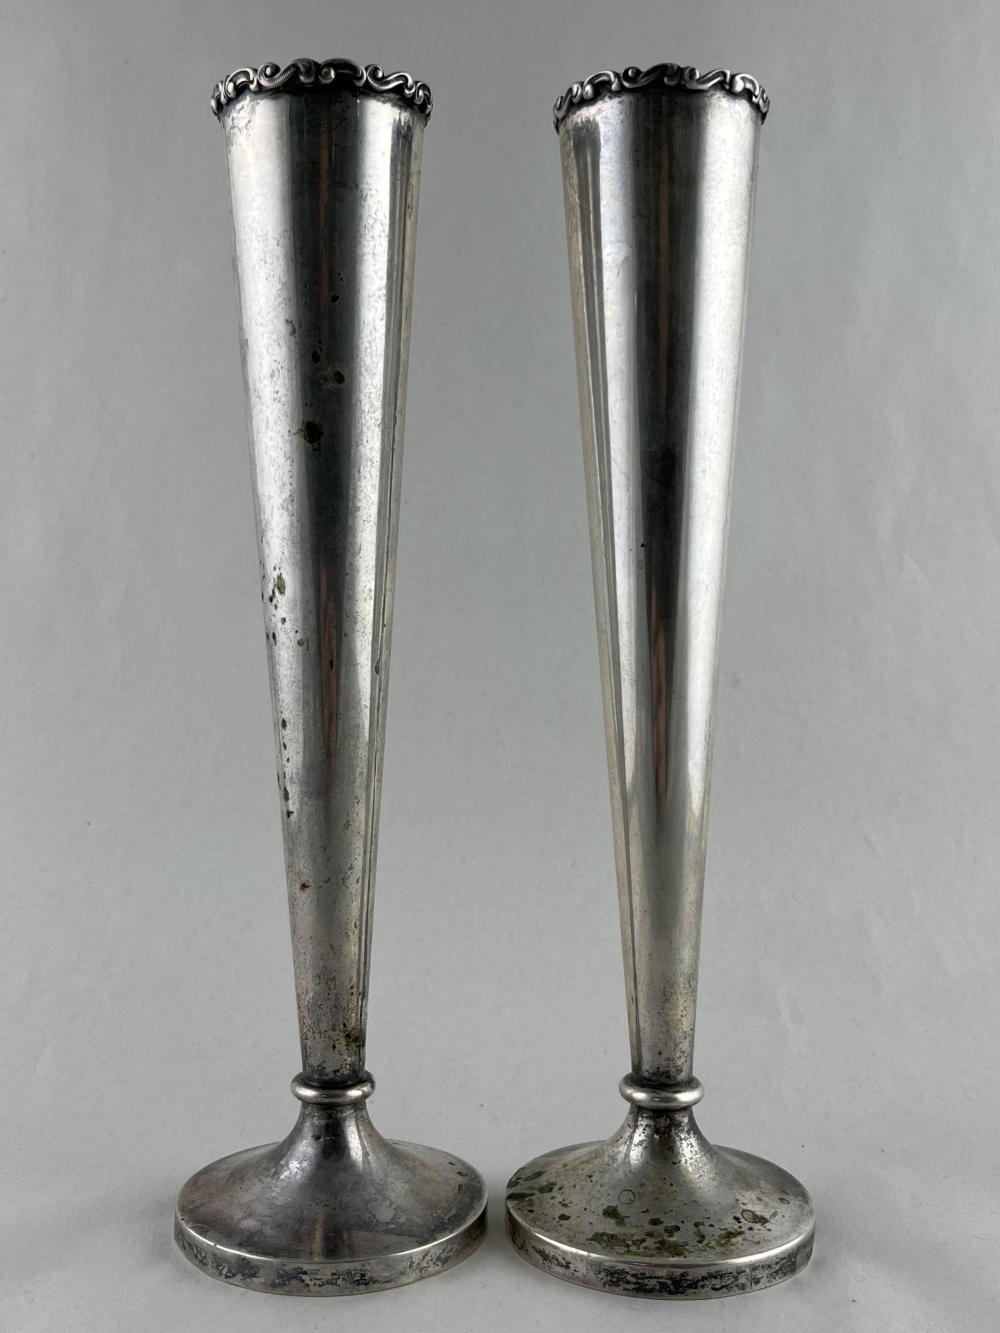 Pair Of Austrian Silver 800 Vases, Antal Bachruch